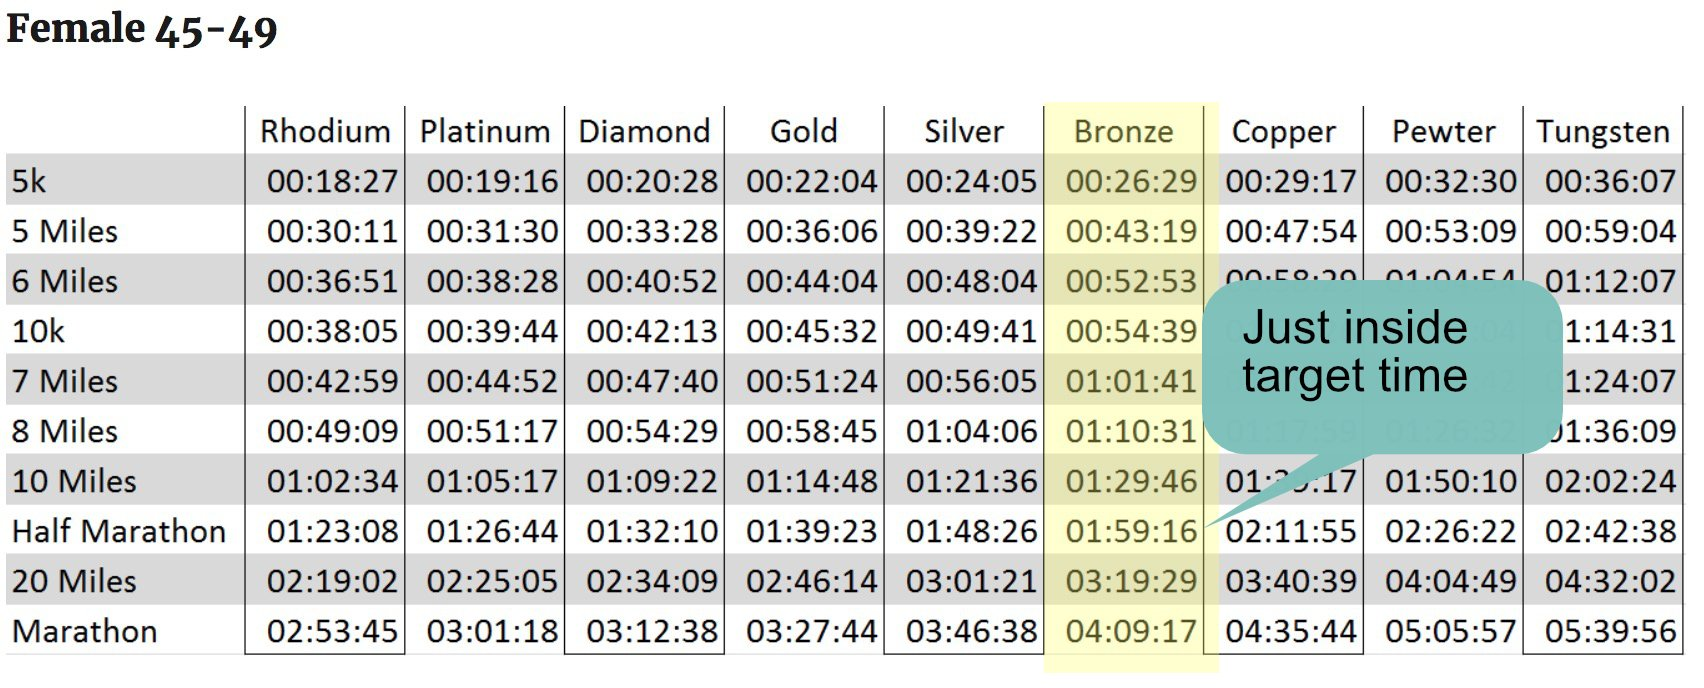 female marathon times